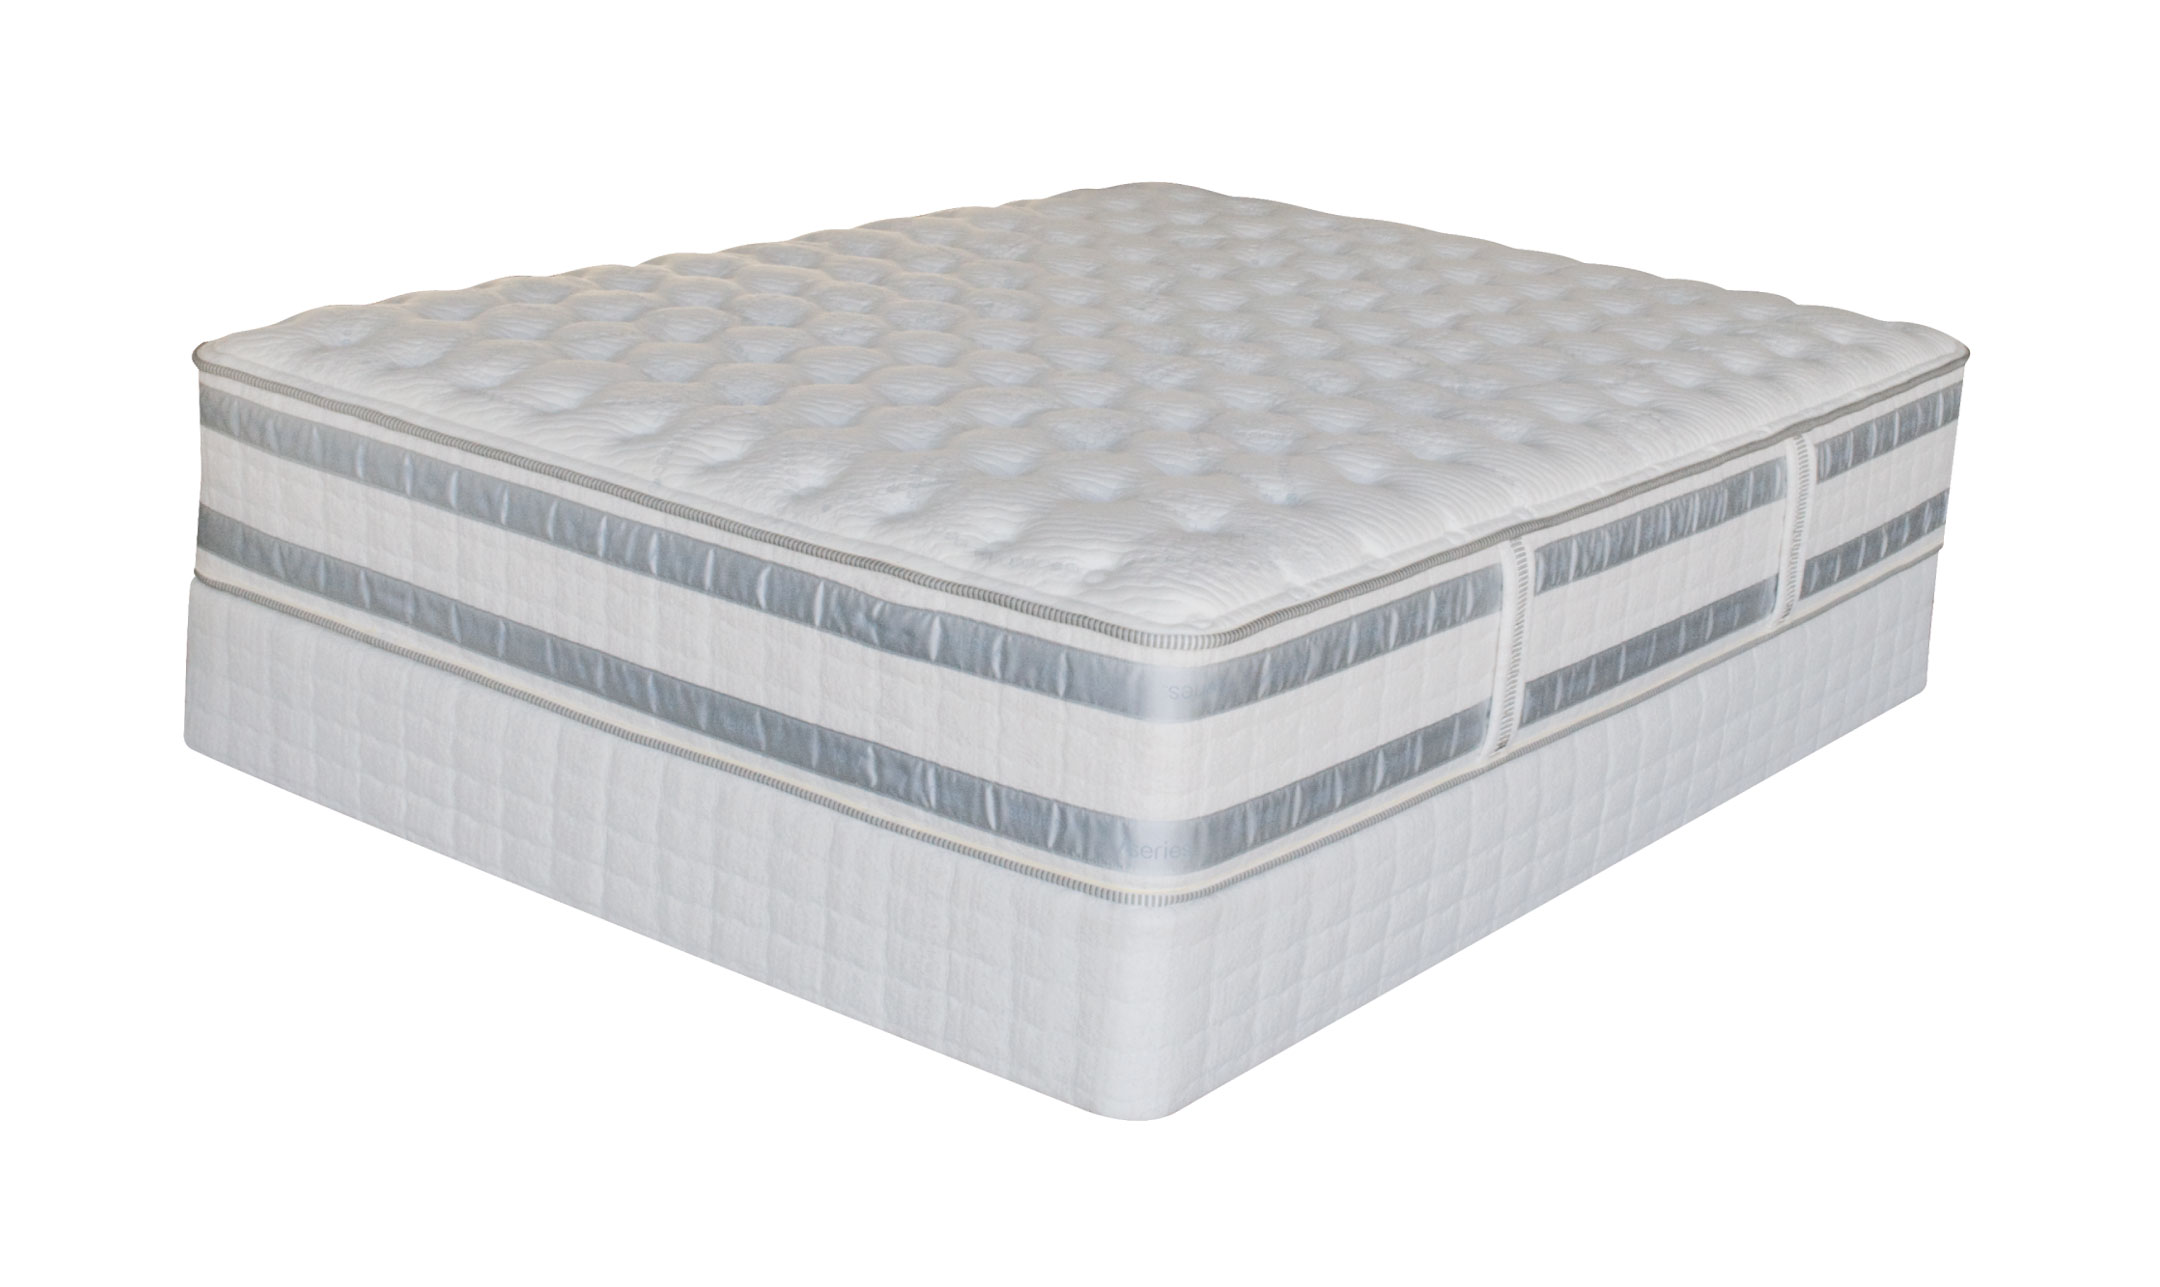 Serta Iseries Of Serta Perfect Day Iseries Applause Firm Mattress Reviews